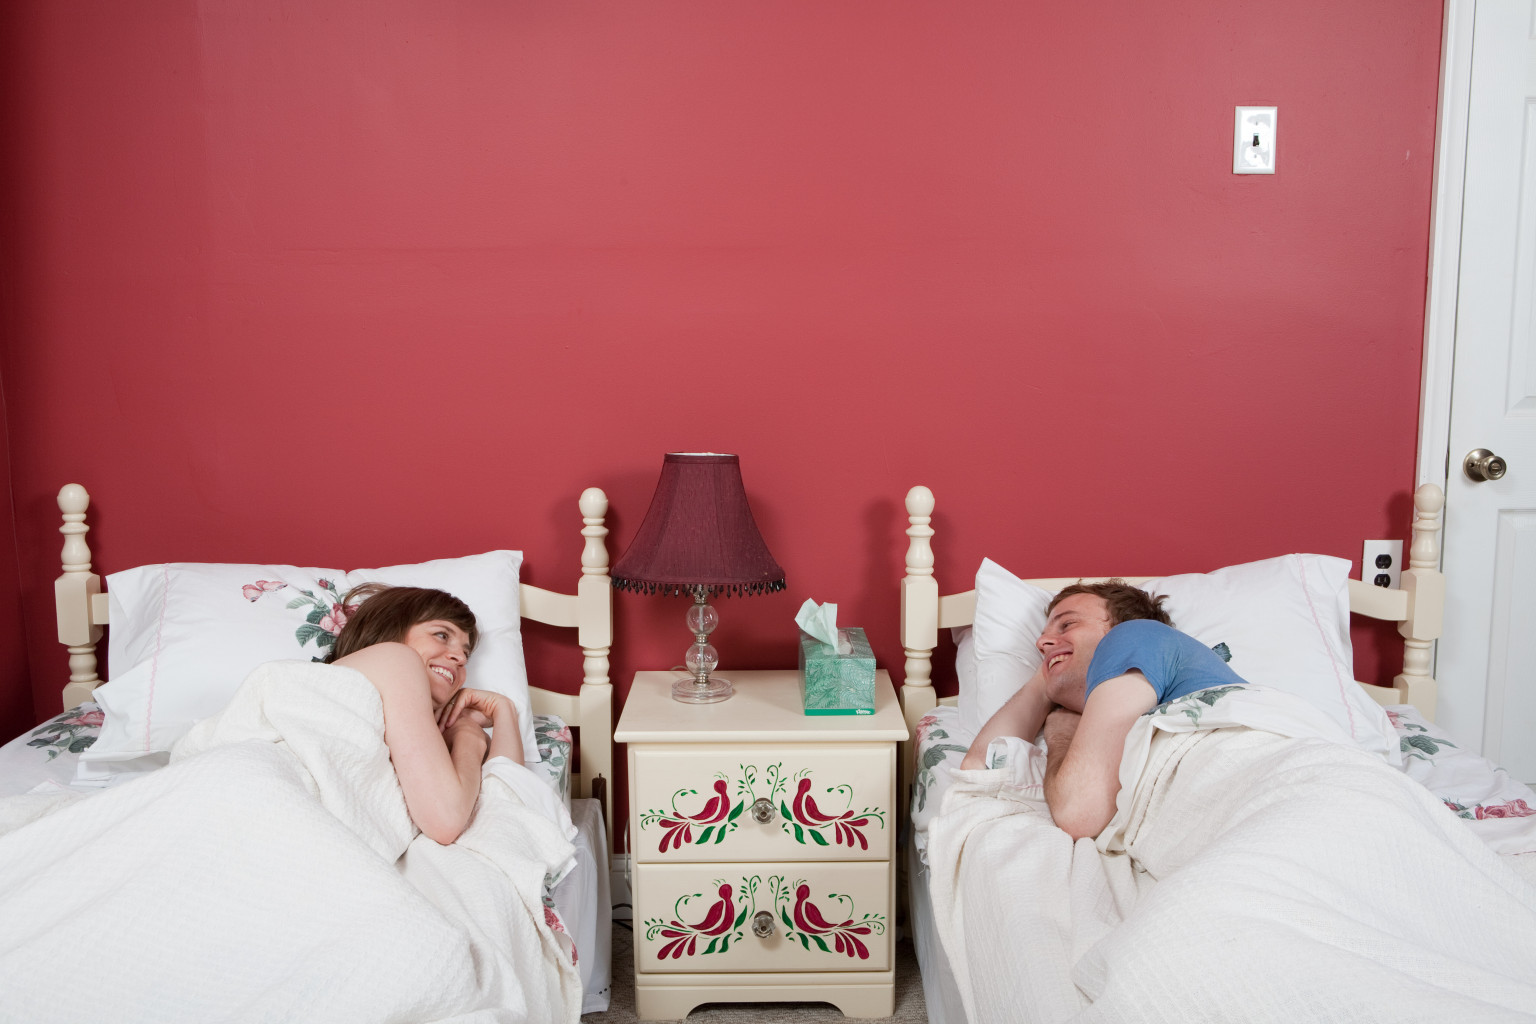 Sleep Study Reveals That 30-40 Percent Of Couples Sleep ...